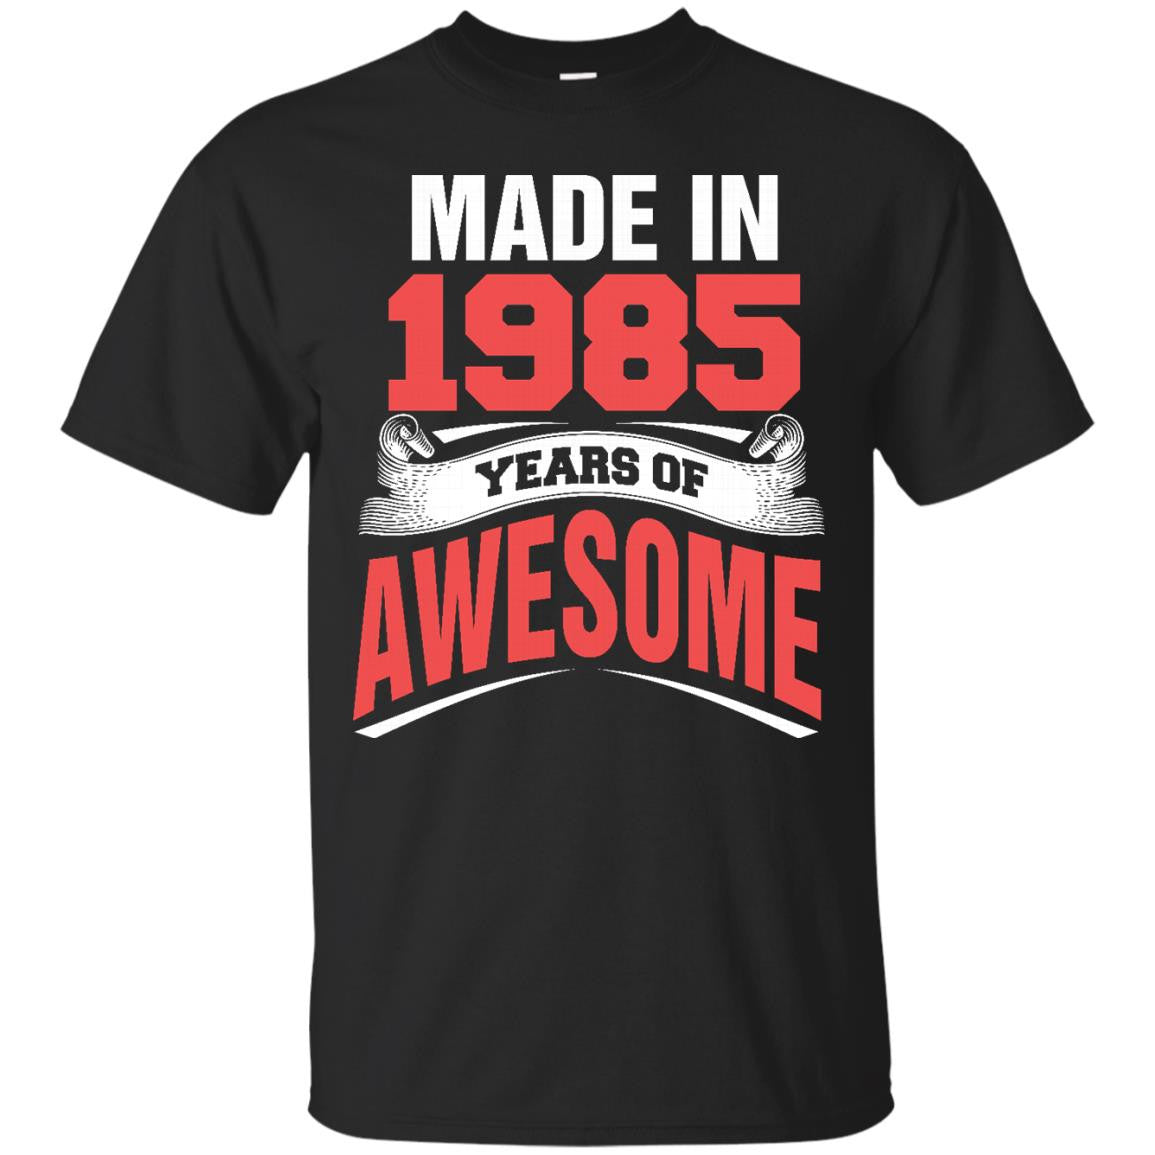 1985 Shirts Made In 1985 Years Of Awesome T-shirts Hoodies Sweatshirts